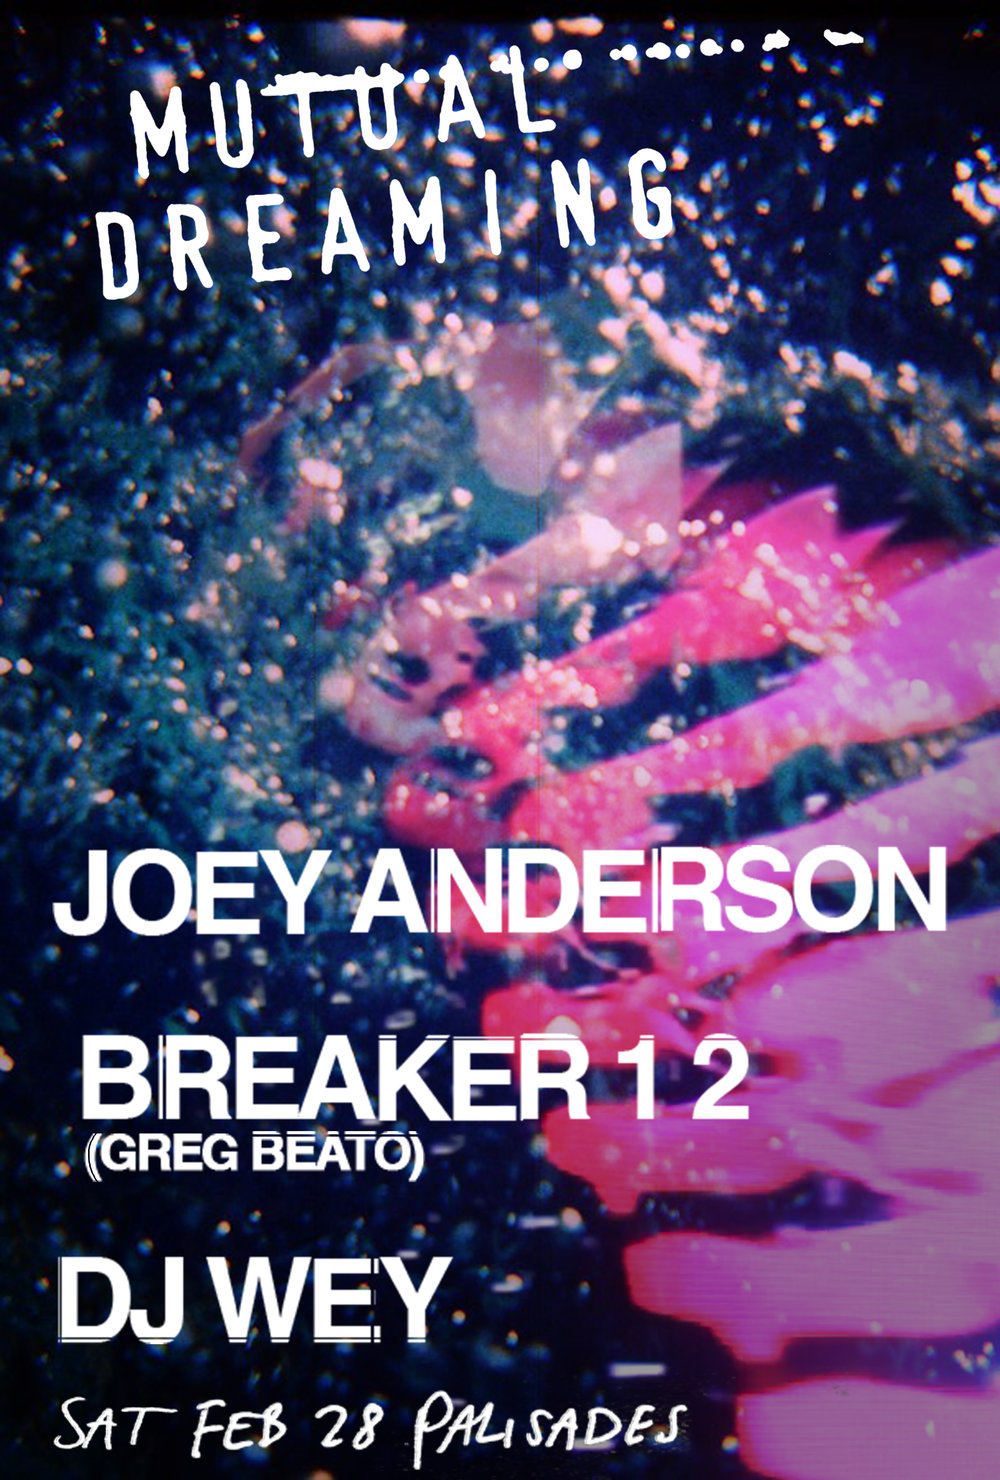 Mutual Dreaming: Joey Anderson, Breaker 1 2 (Greg Beato), DJ Wey  February 2015